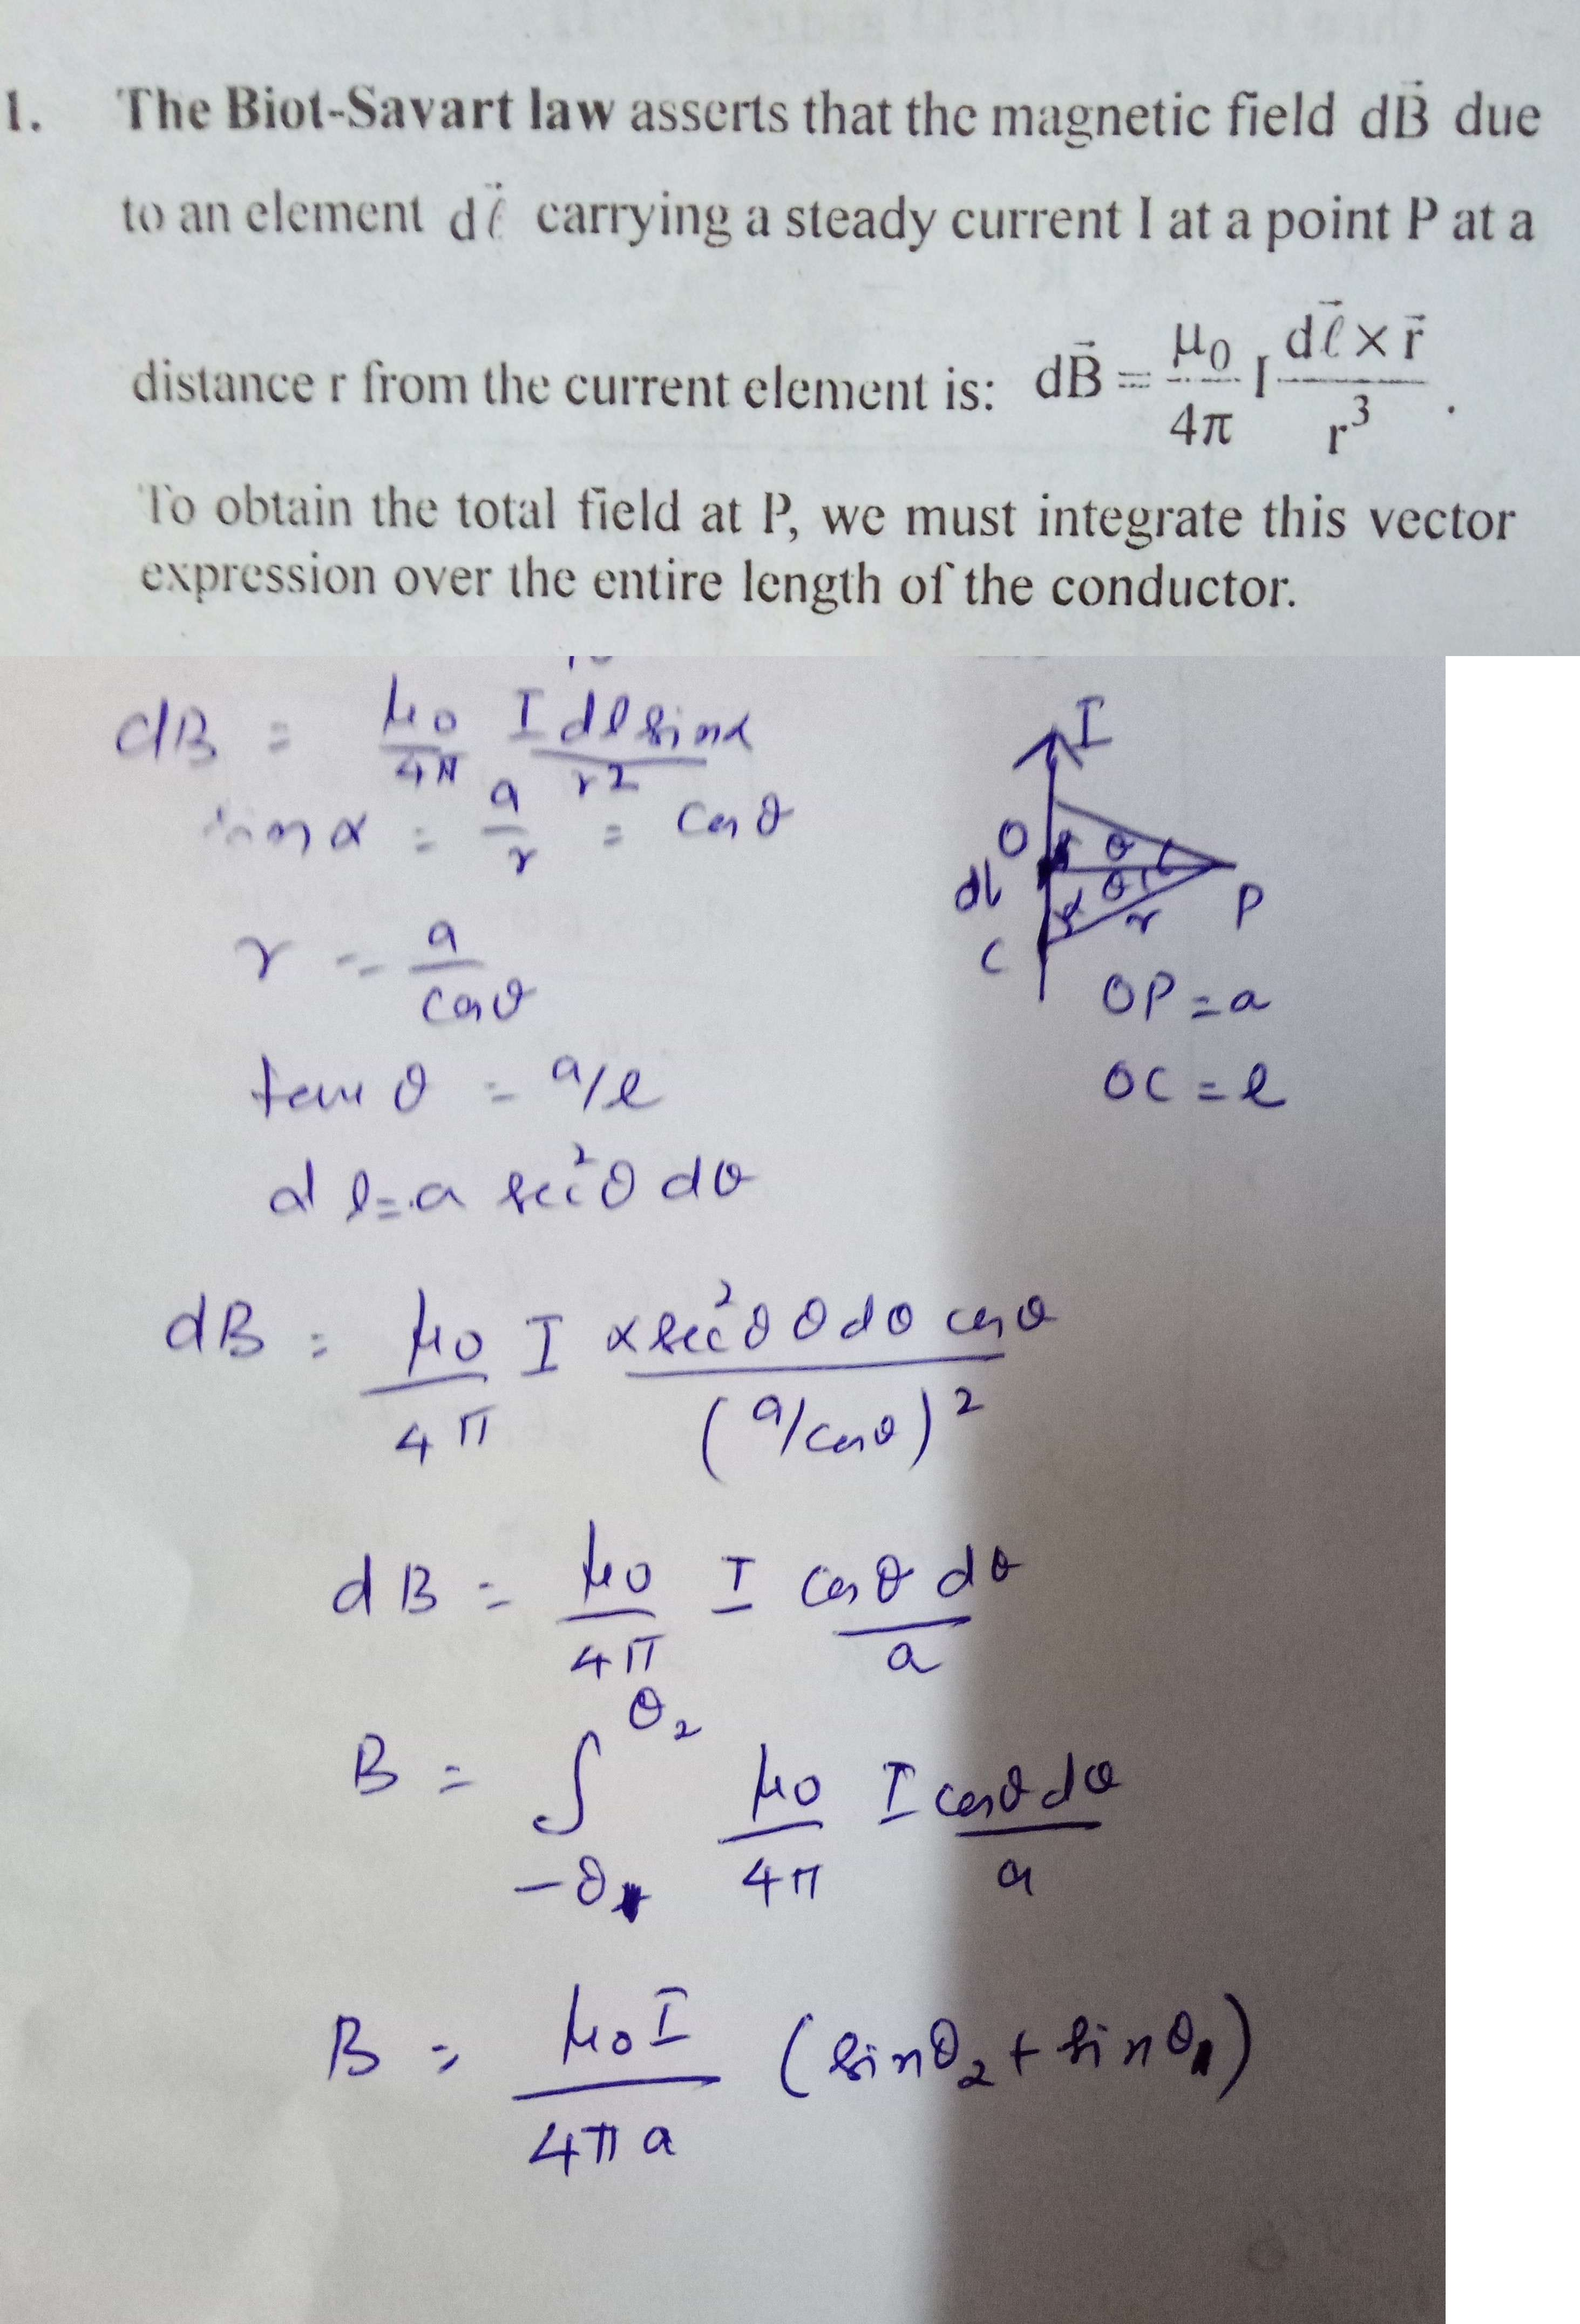 Q)  Define Biot savart's law using this law device an expression for